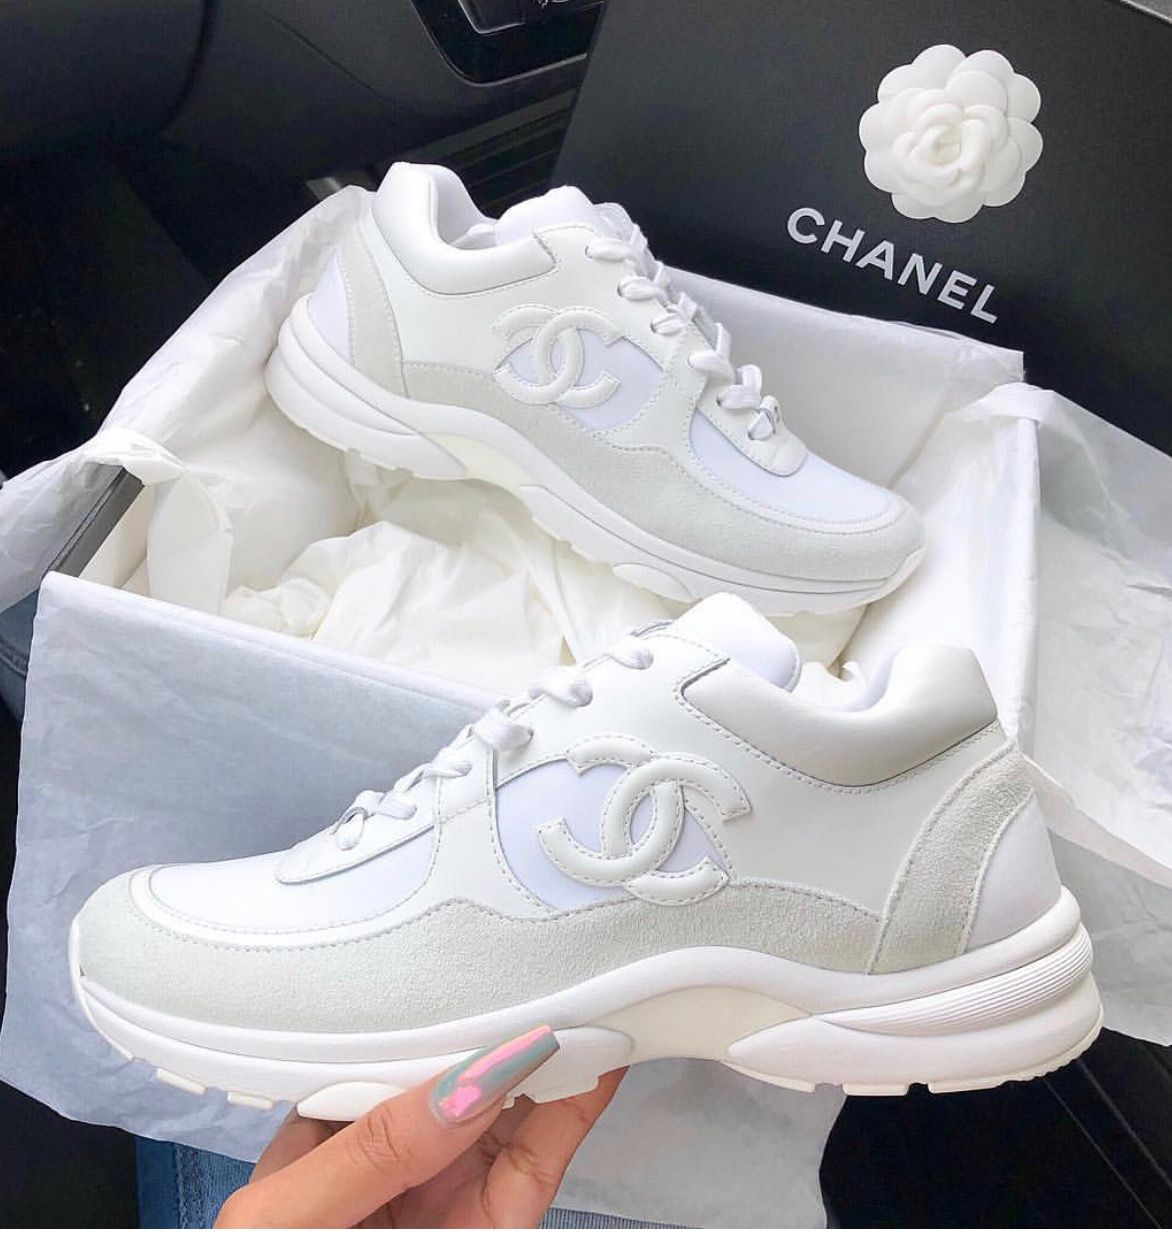 Pin von Magdalena Weiss auf Shoes in 2020 | Sneakers mode